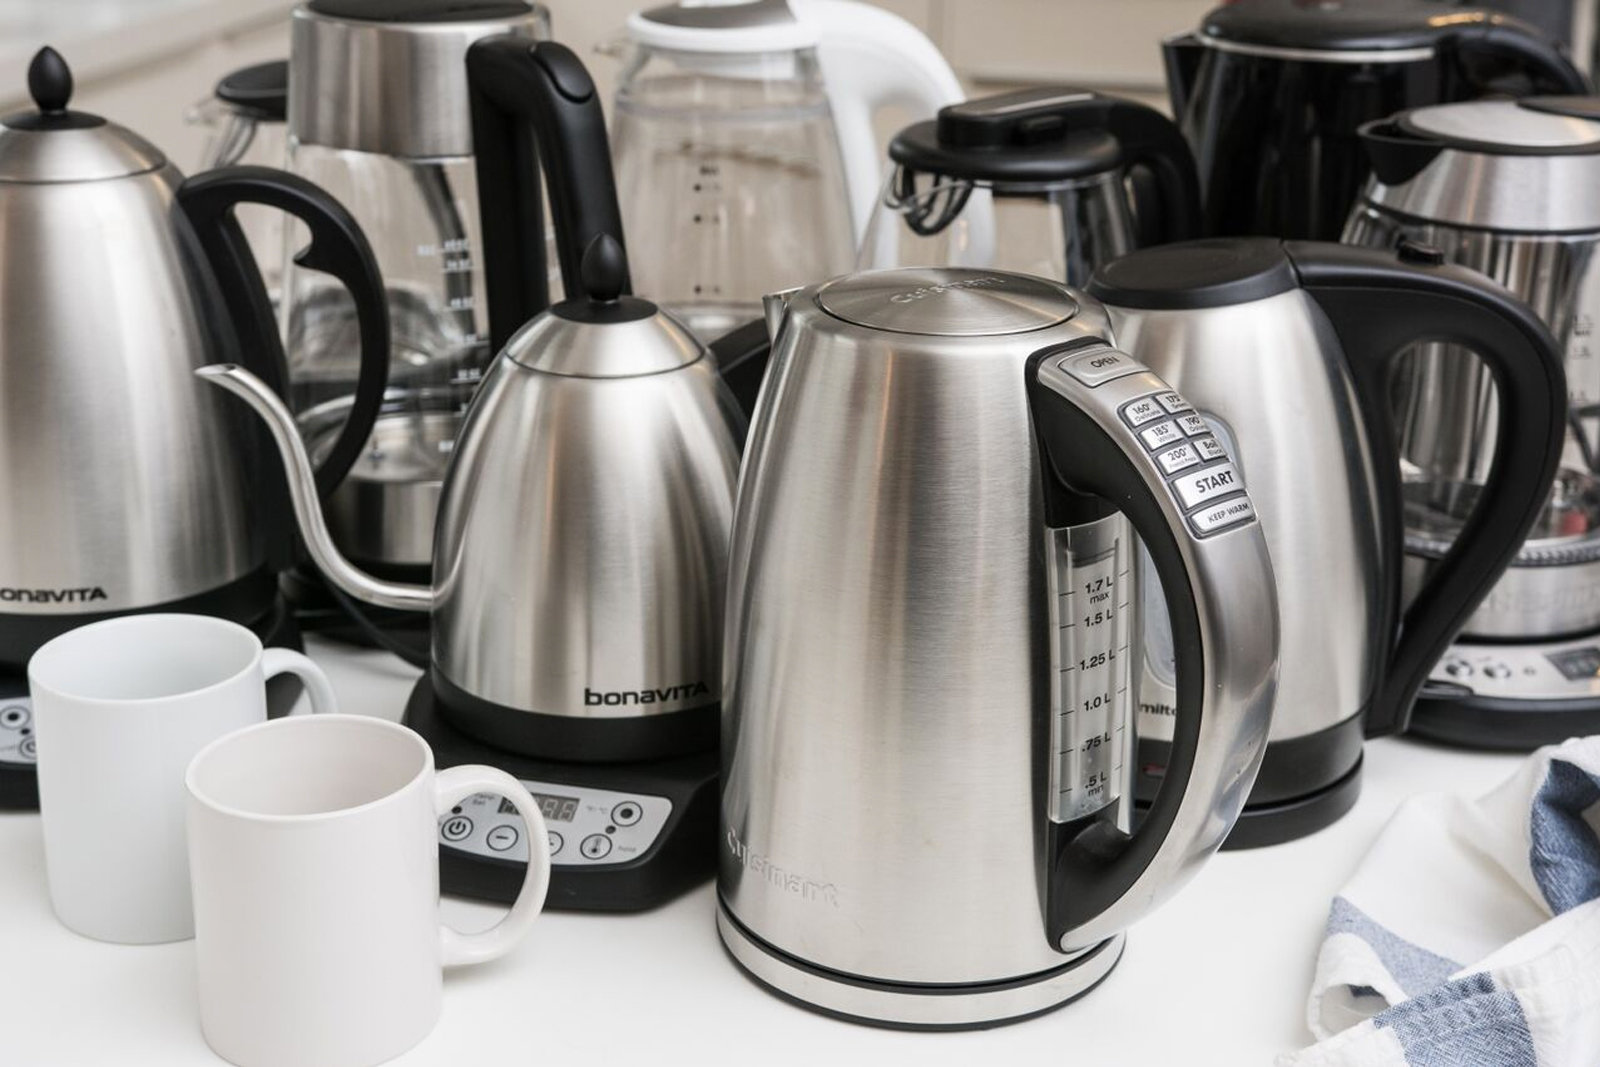 710-electric kettle